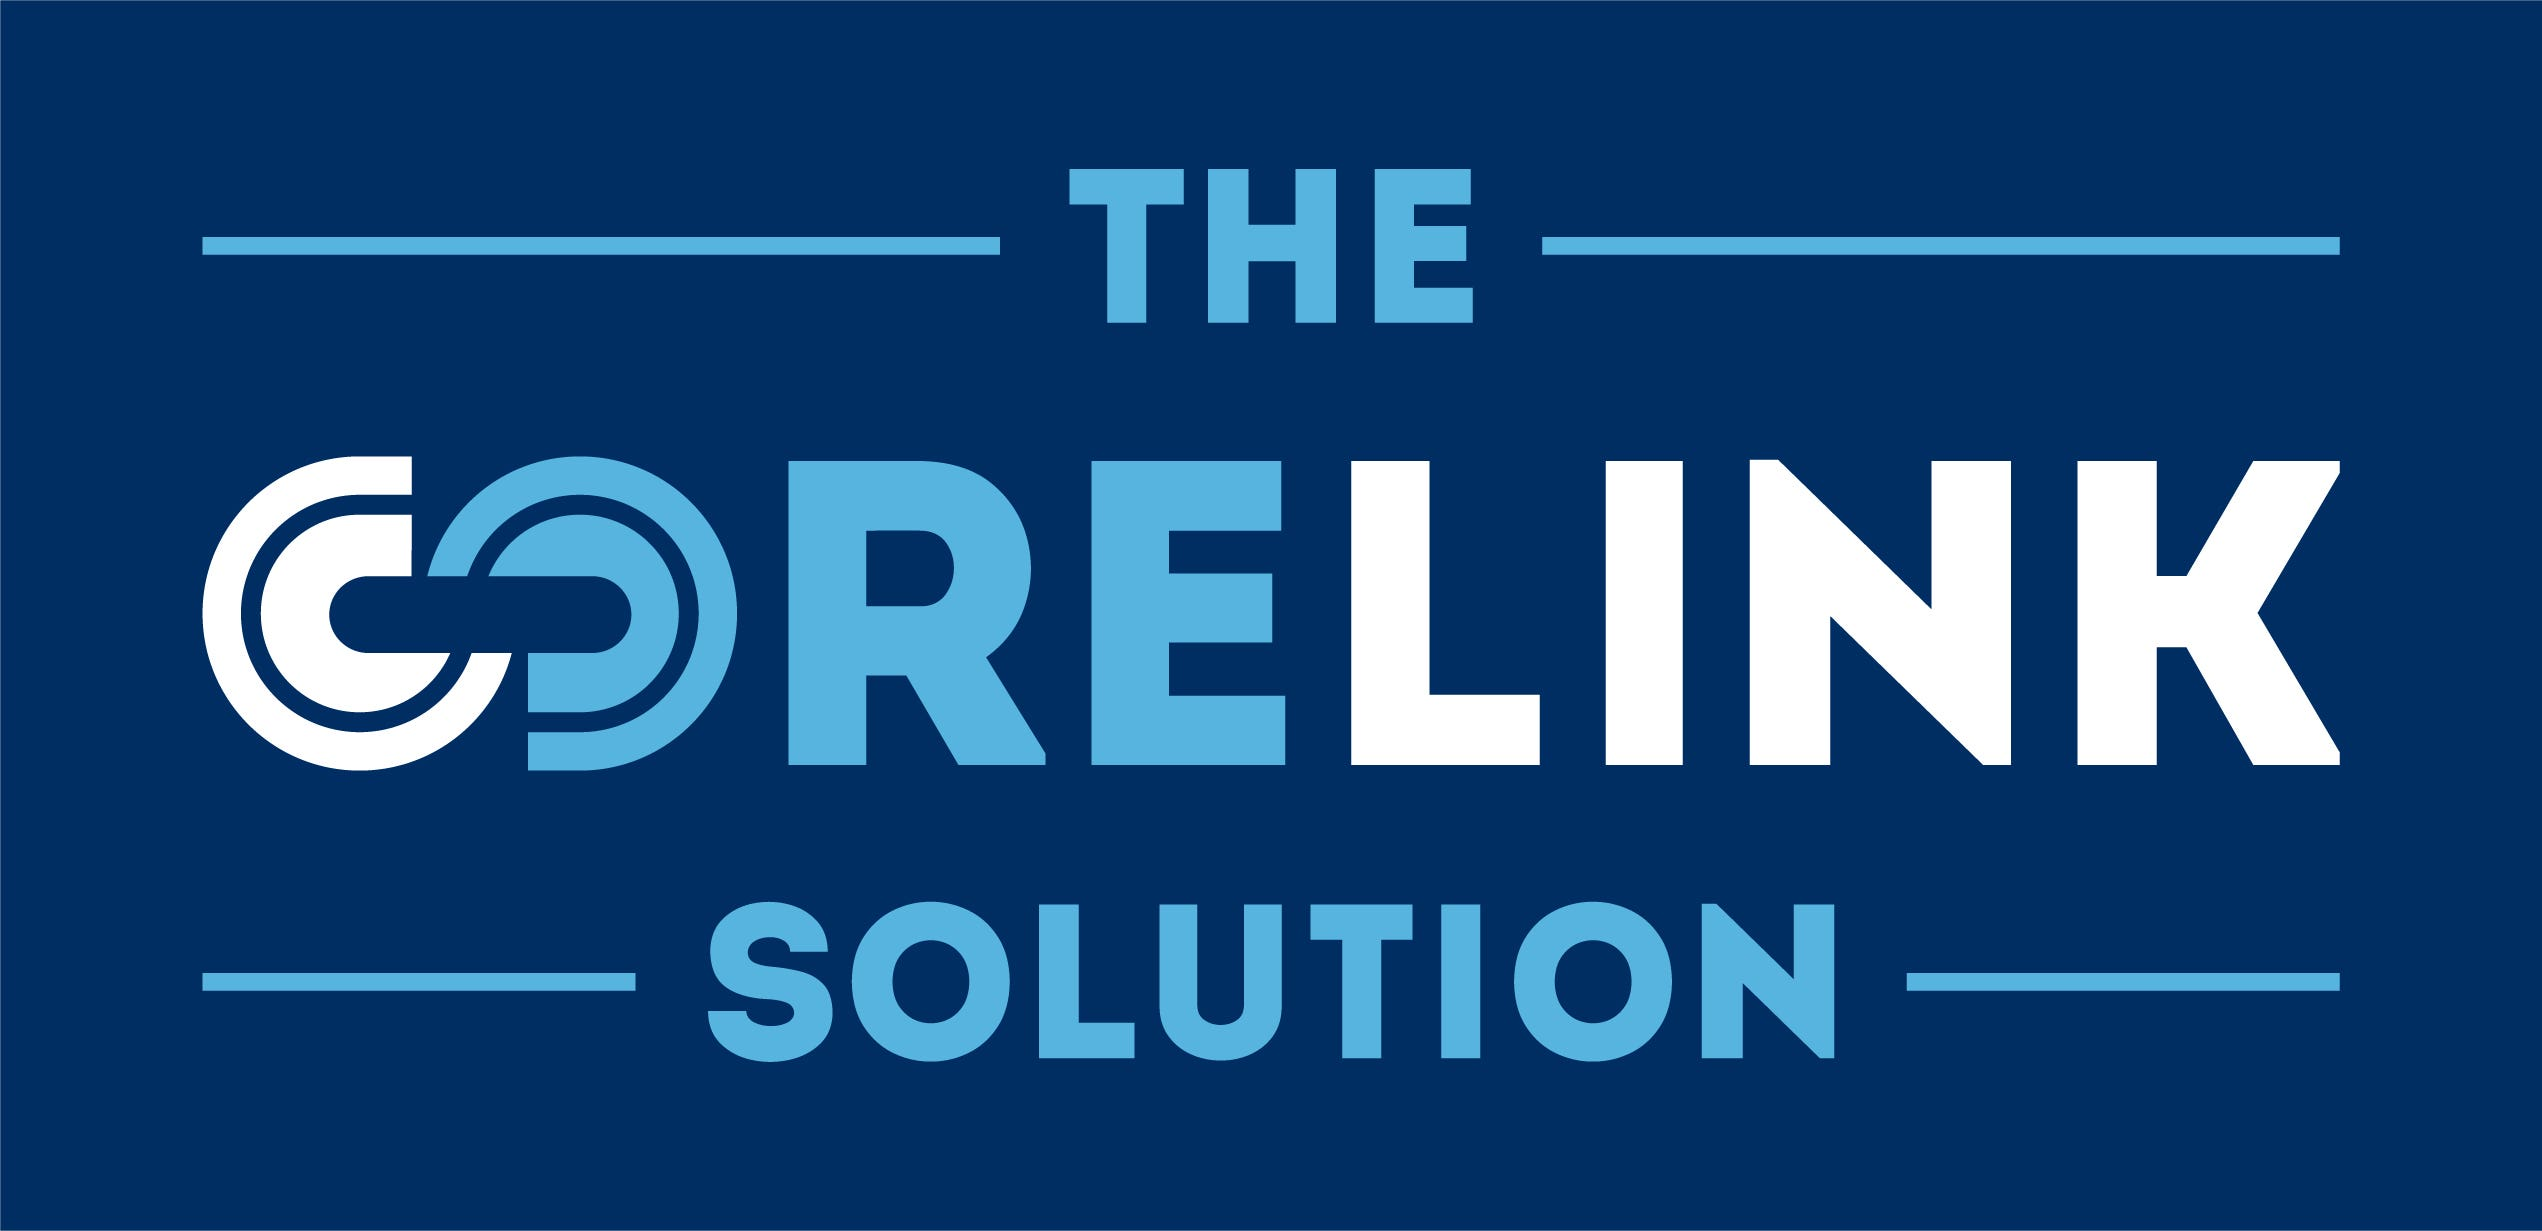 The Corelink Solution